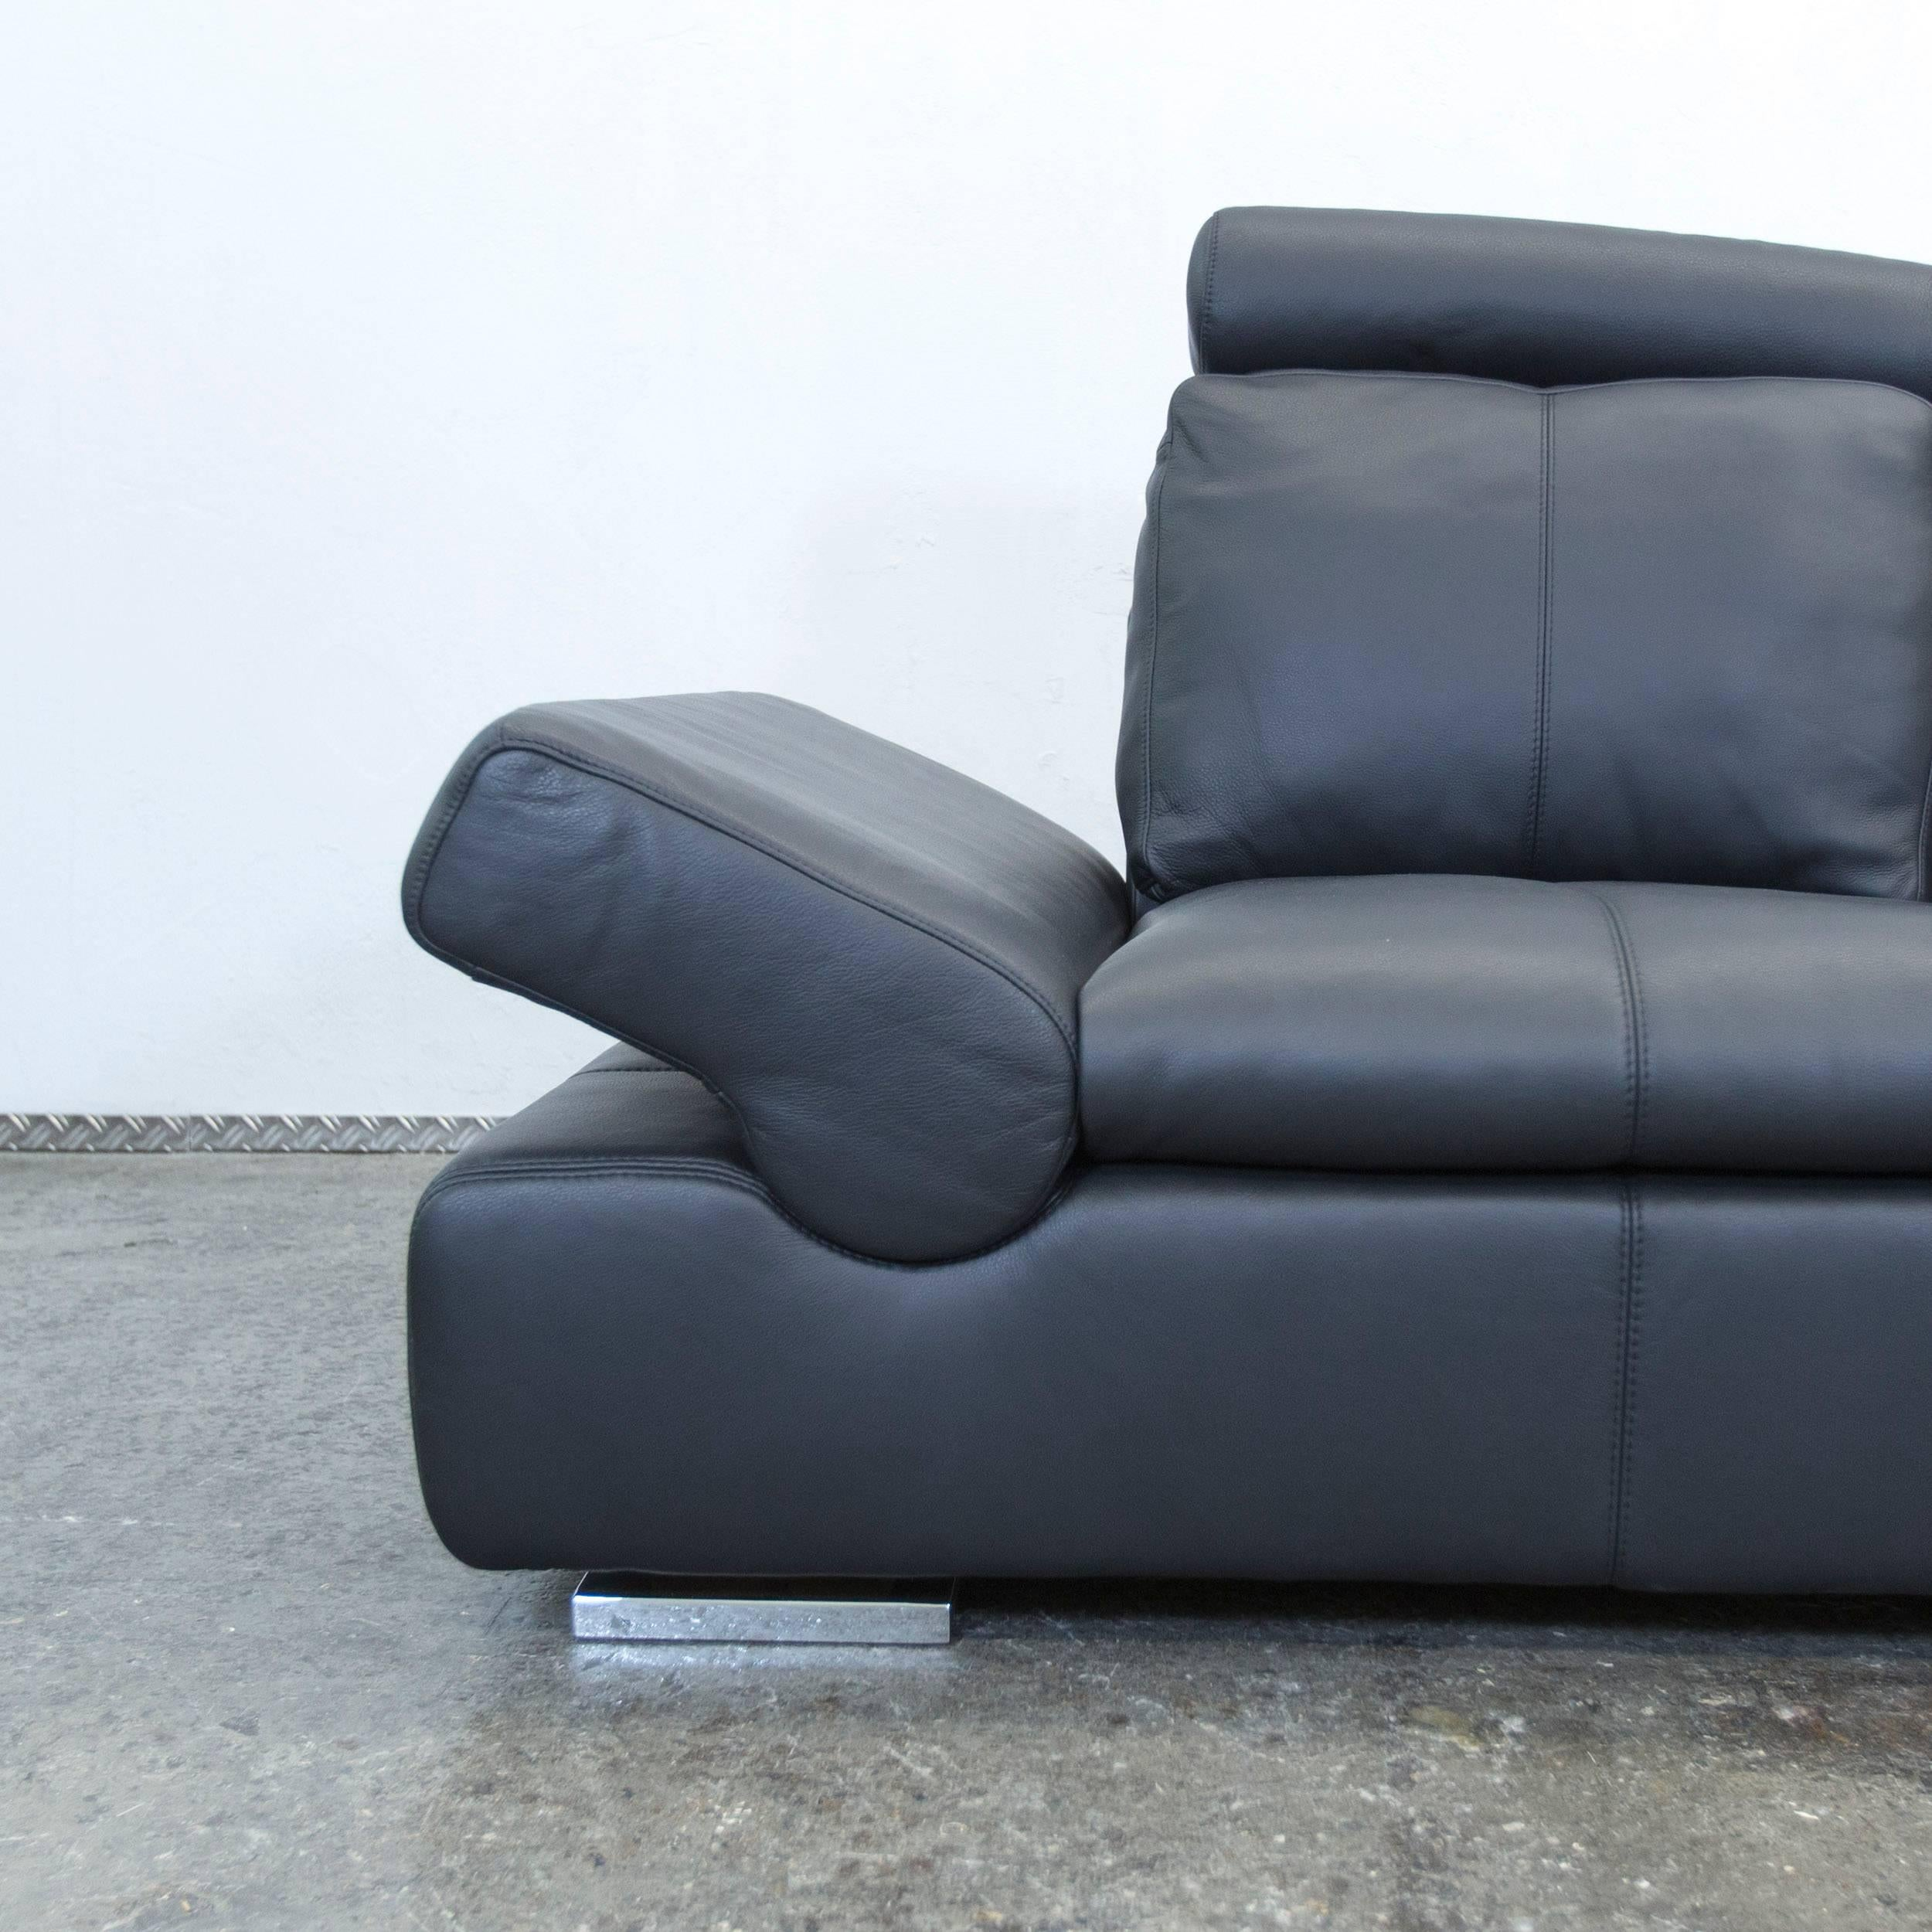 Musterring Sofas. Stunning Musterring With Musterring Sofas ...